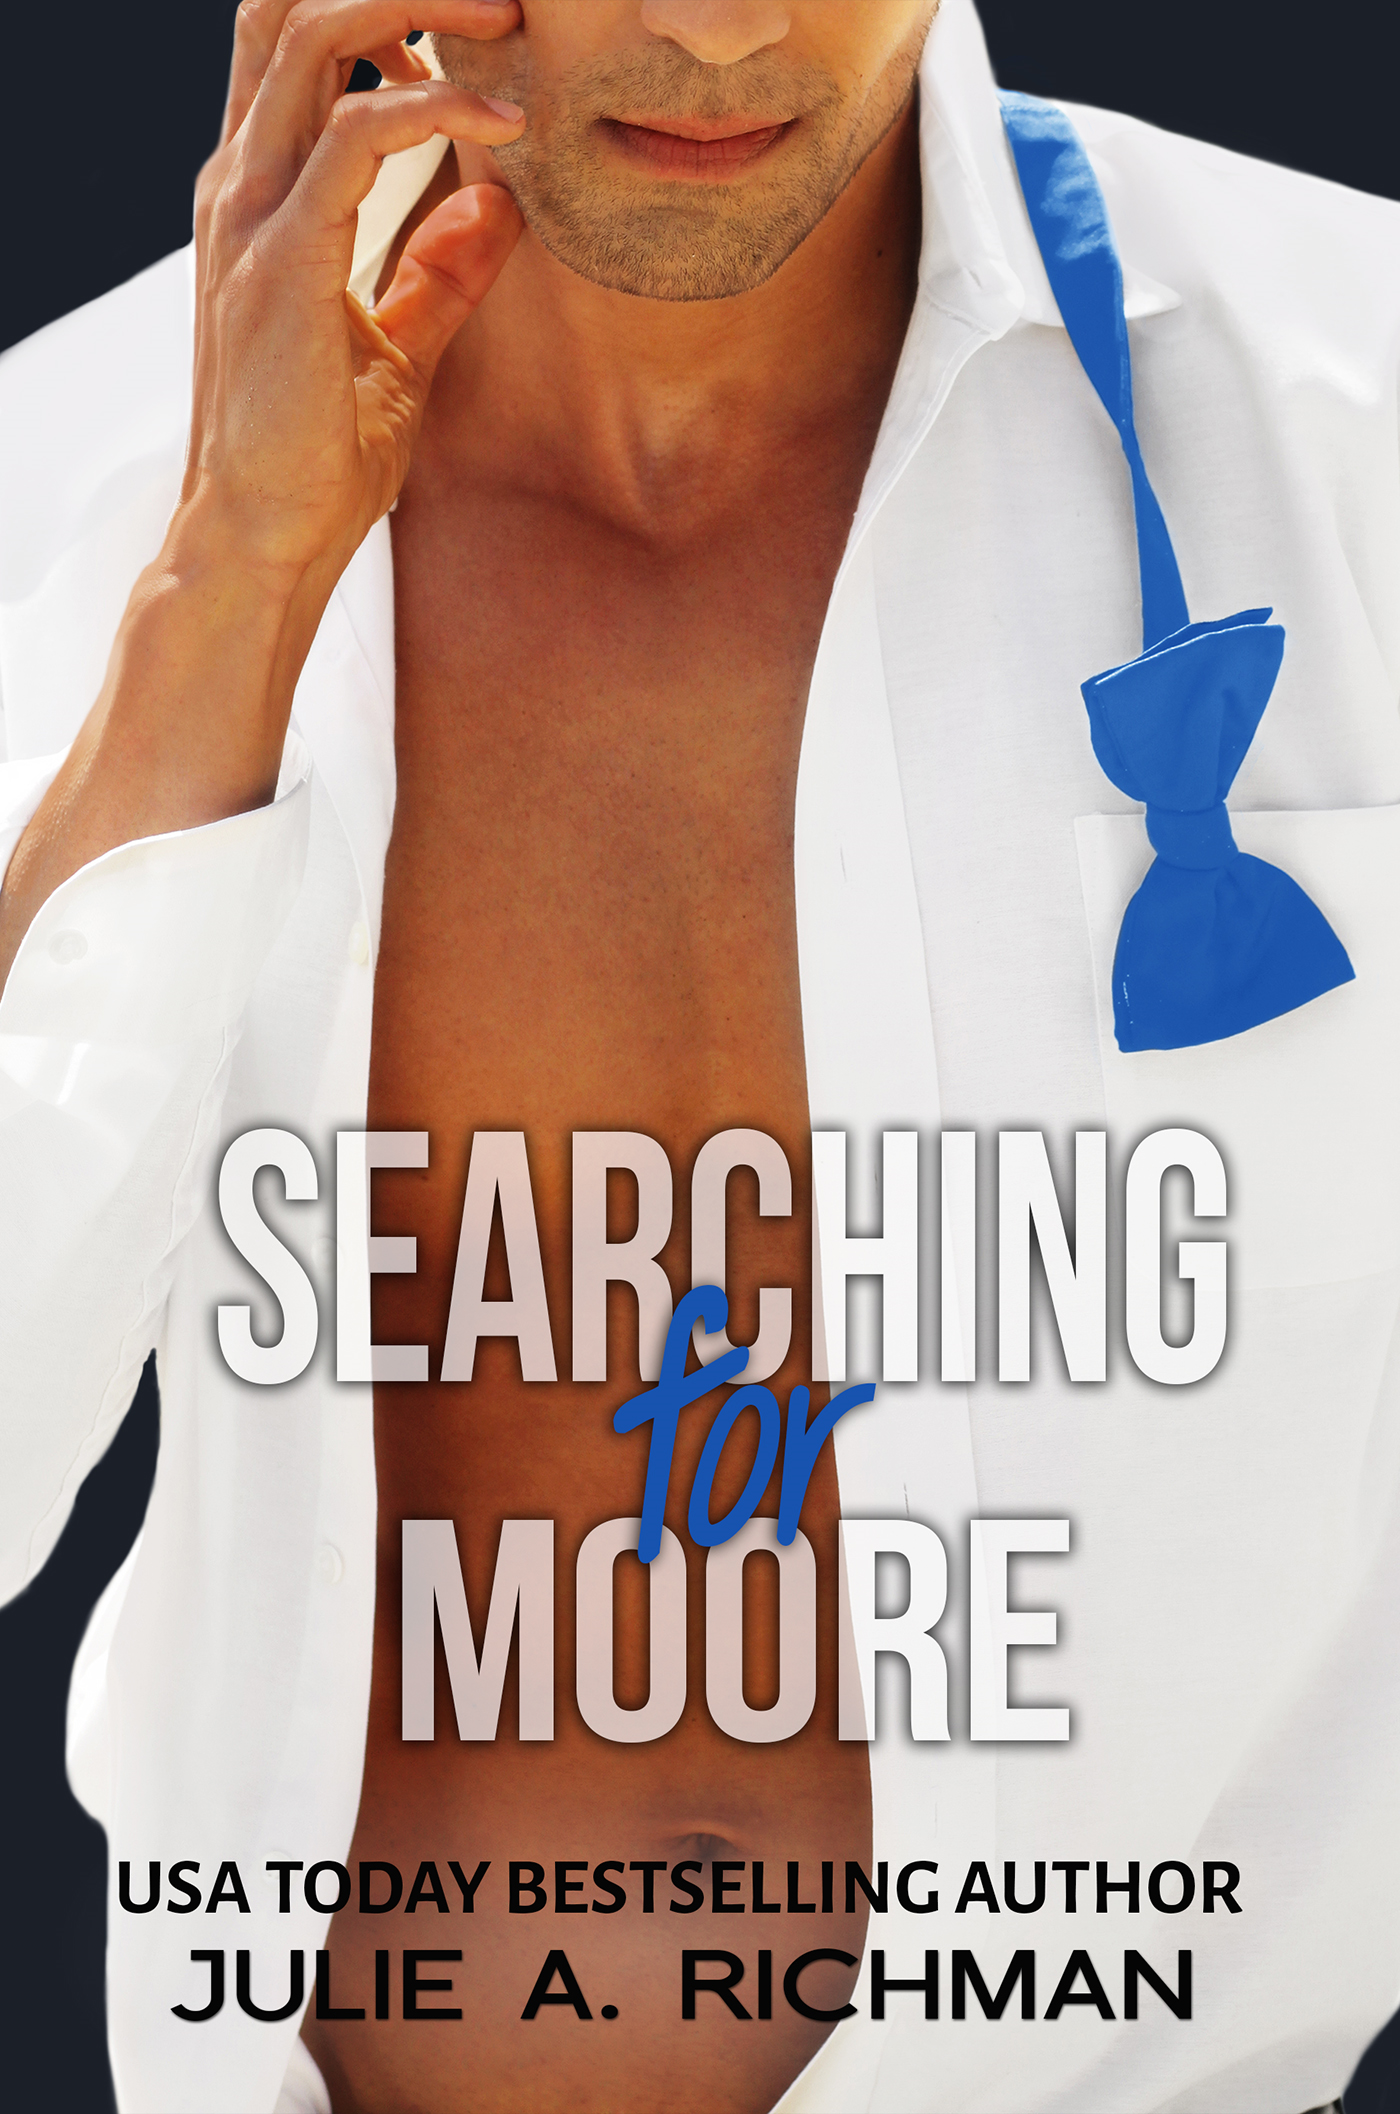 Julie A. Richman - Searching For Moore